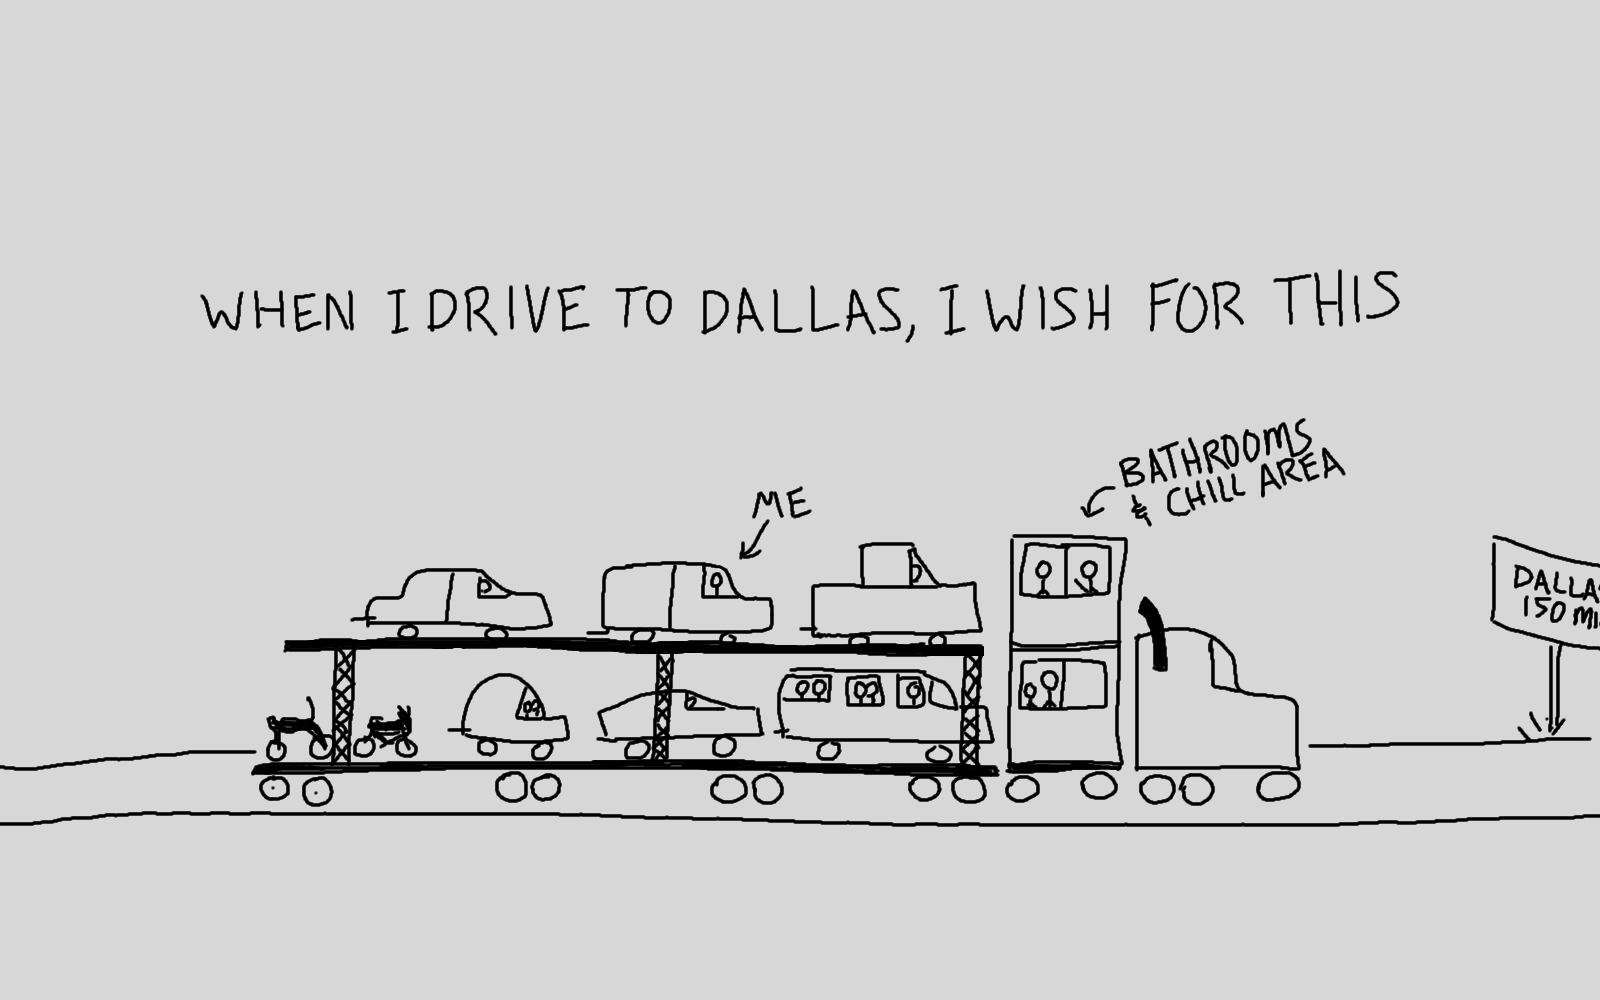 Cars really emphasize my inability to draw.